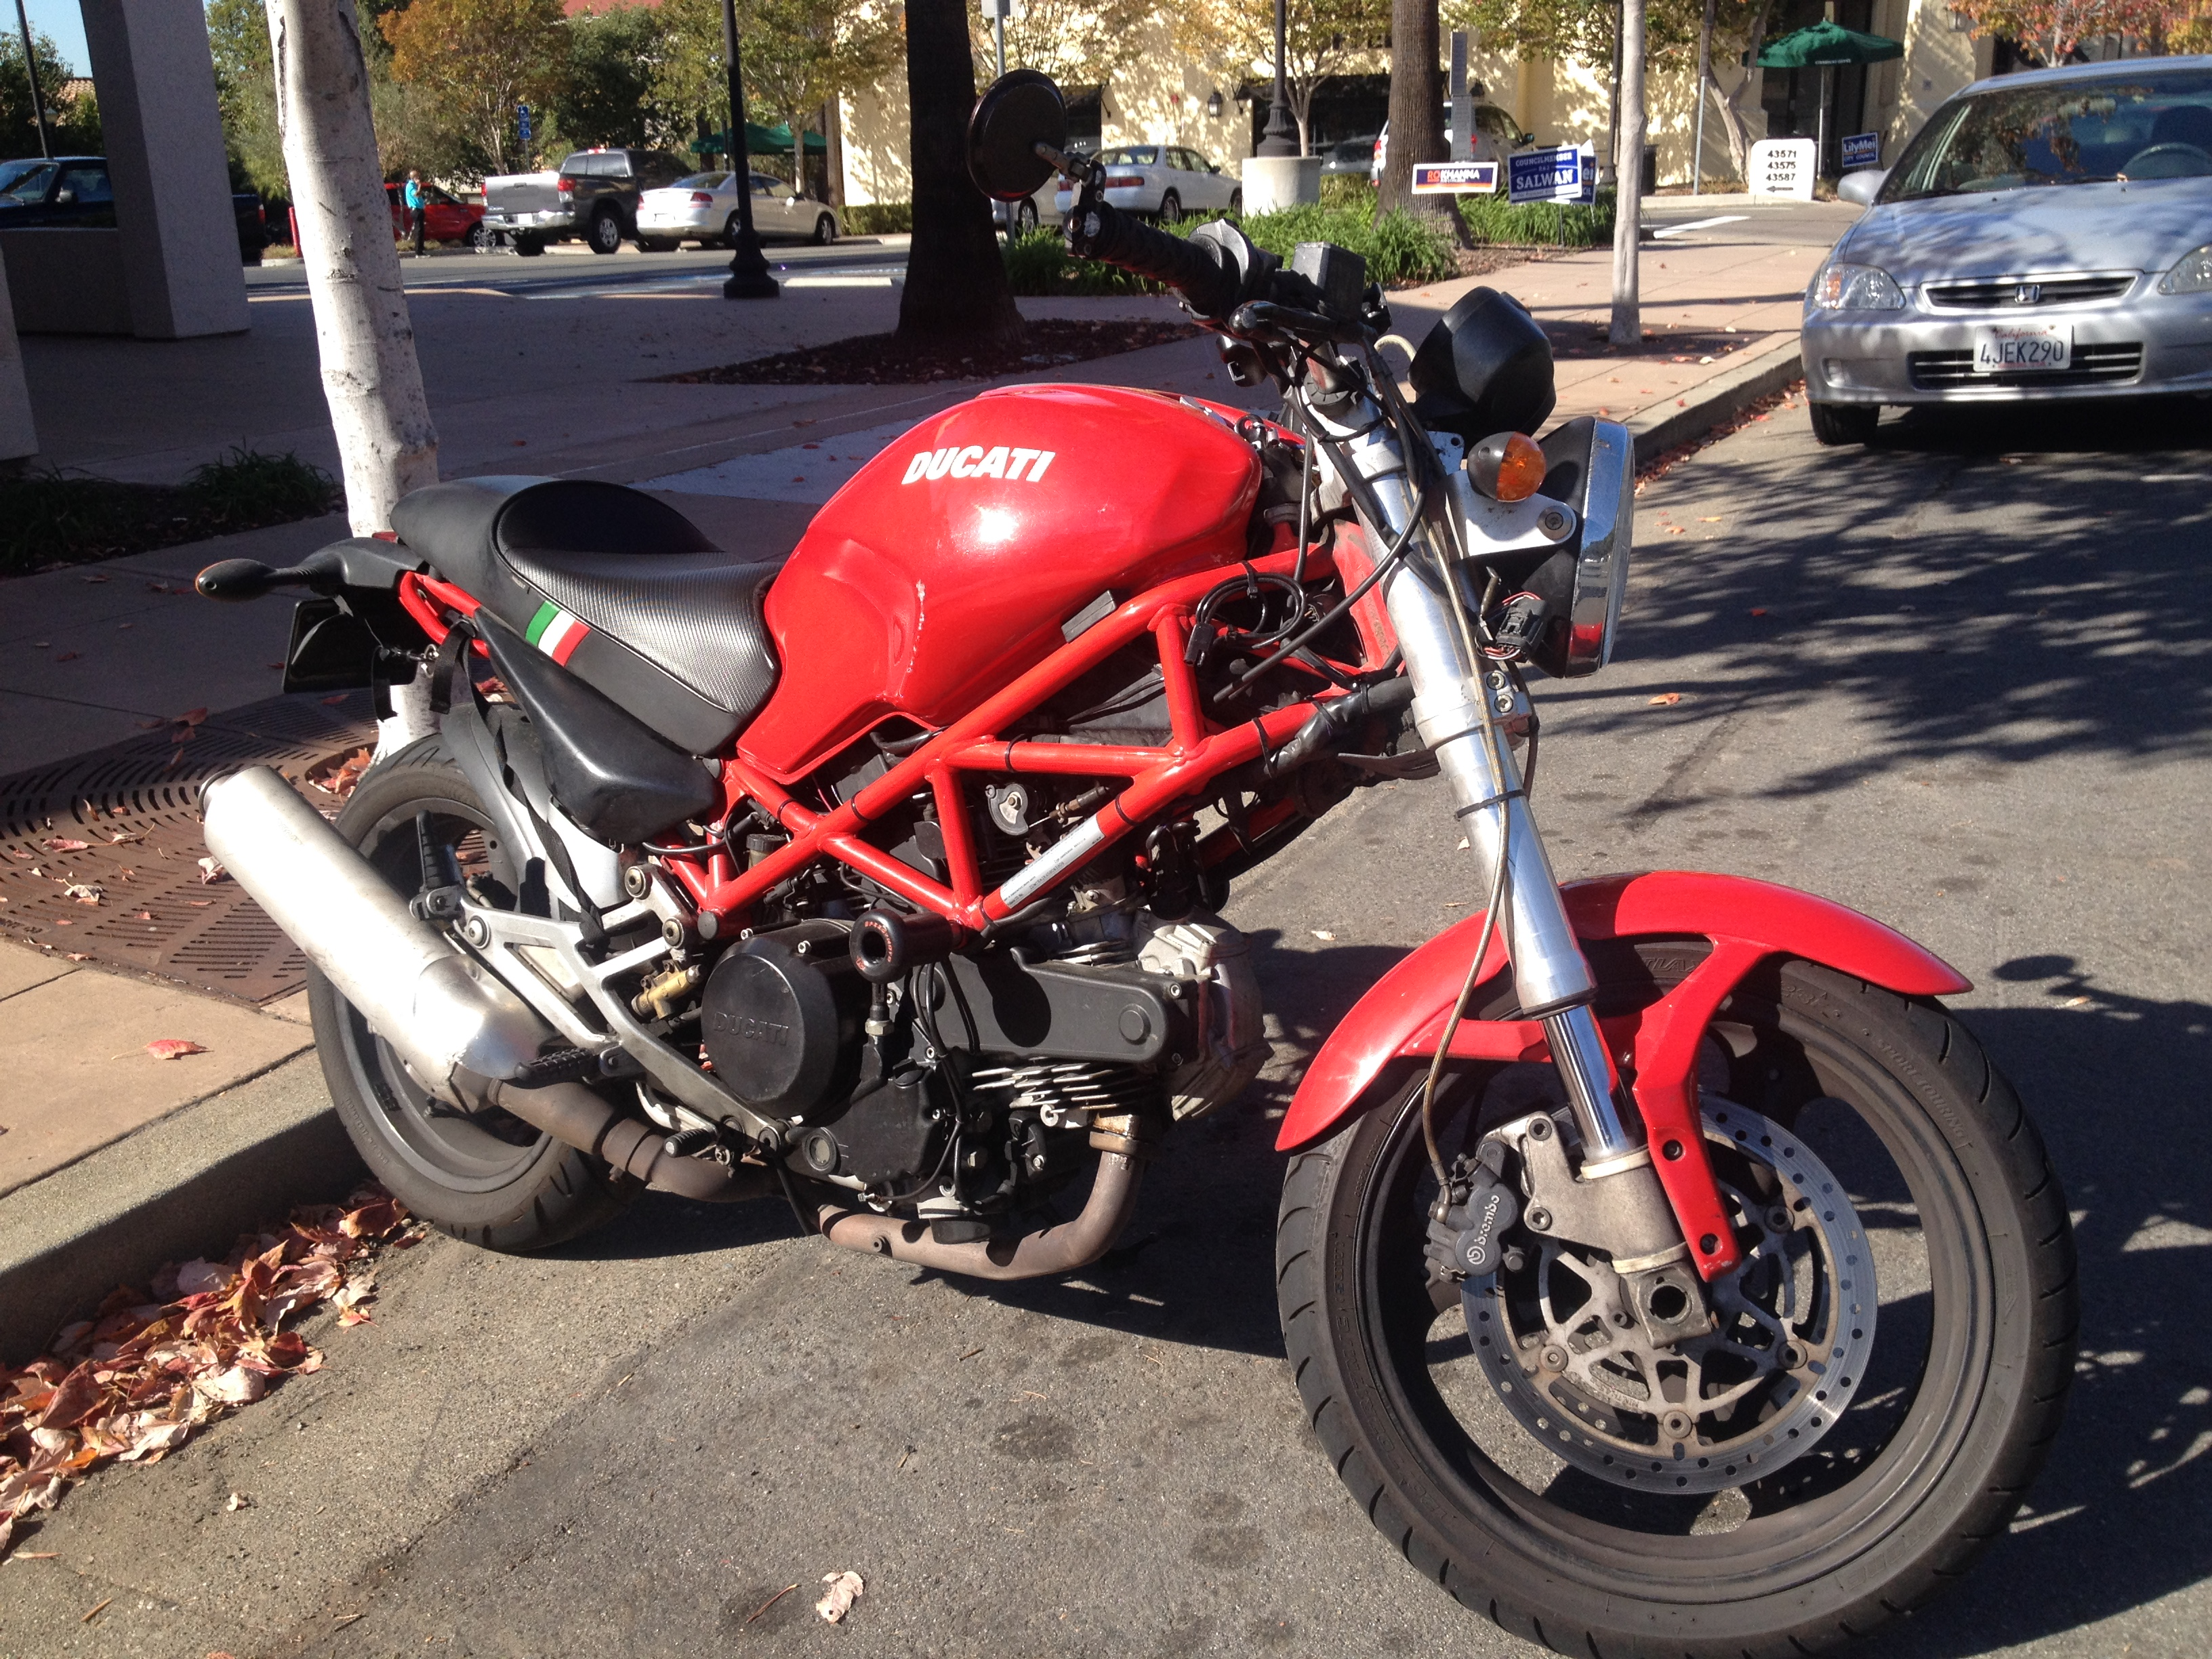 Ducati Monster 800 images #154662